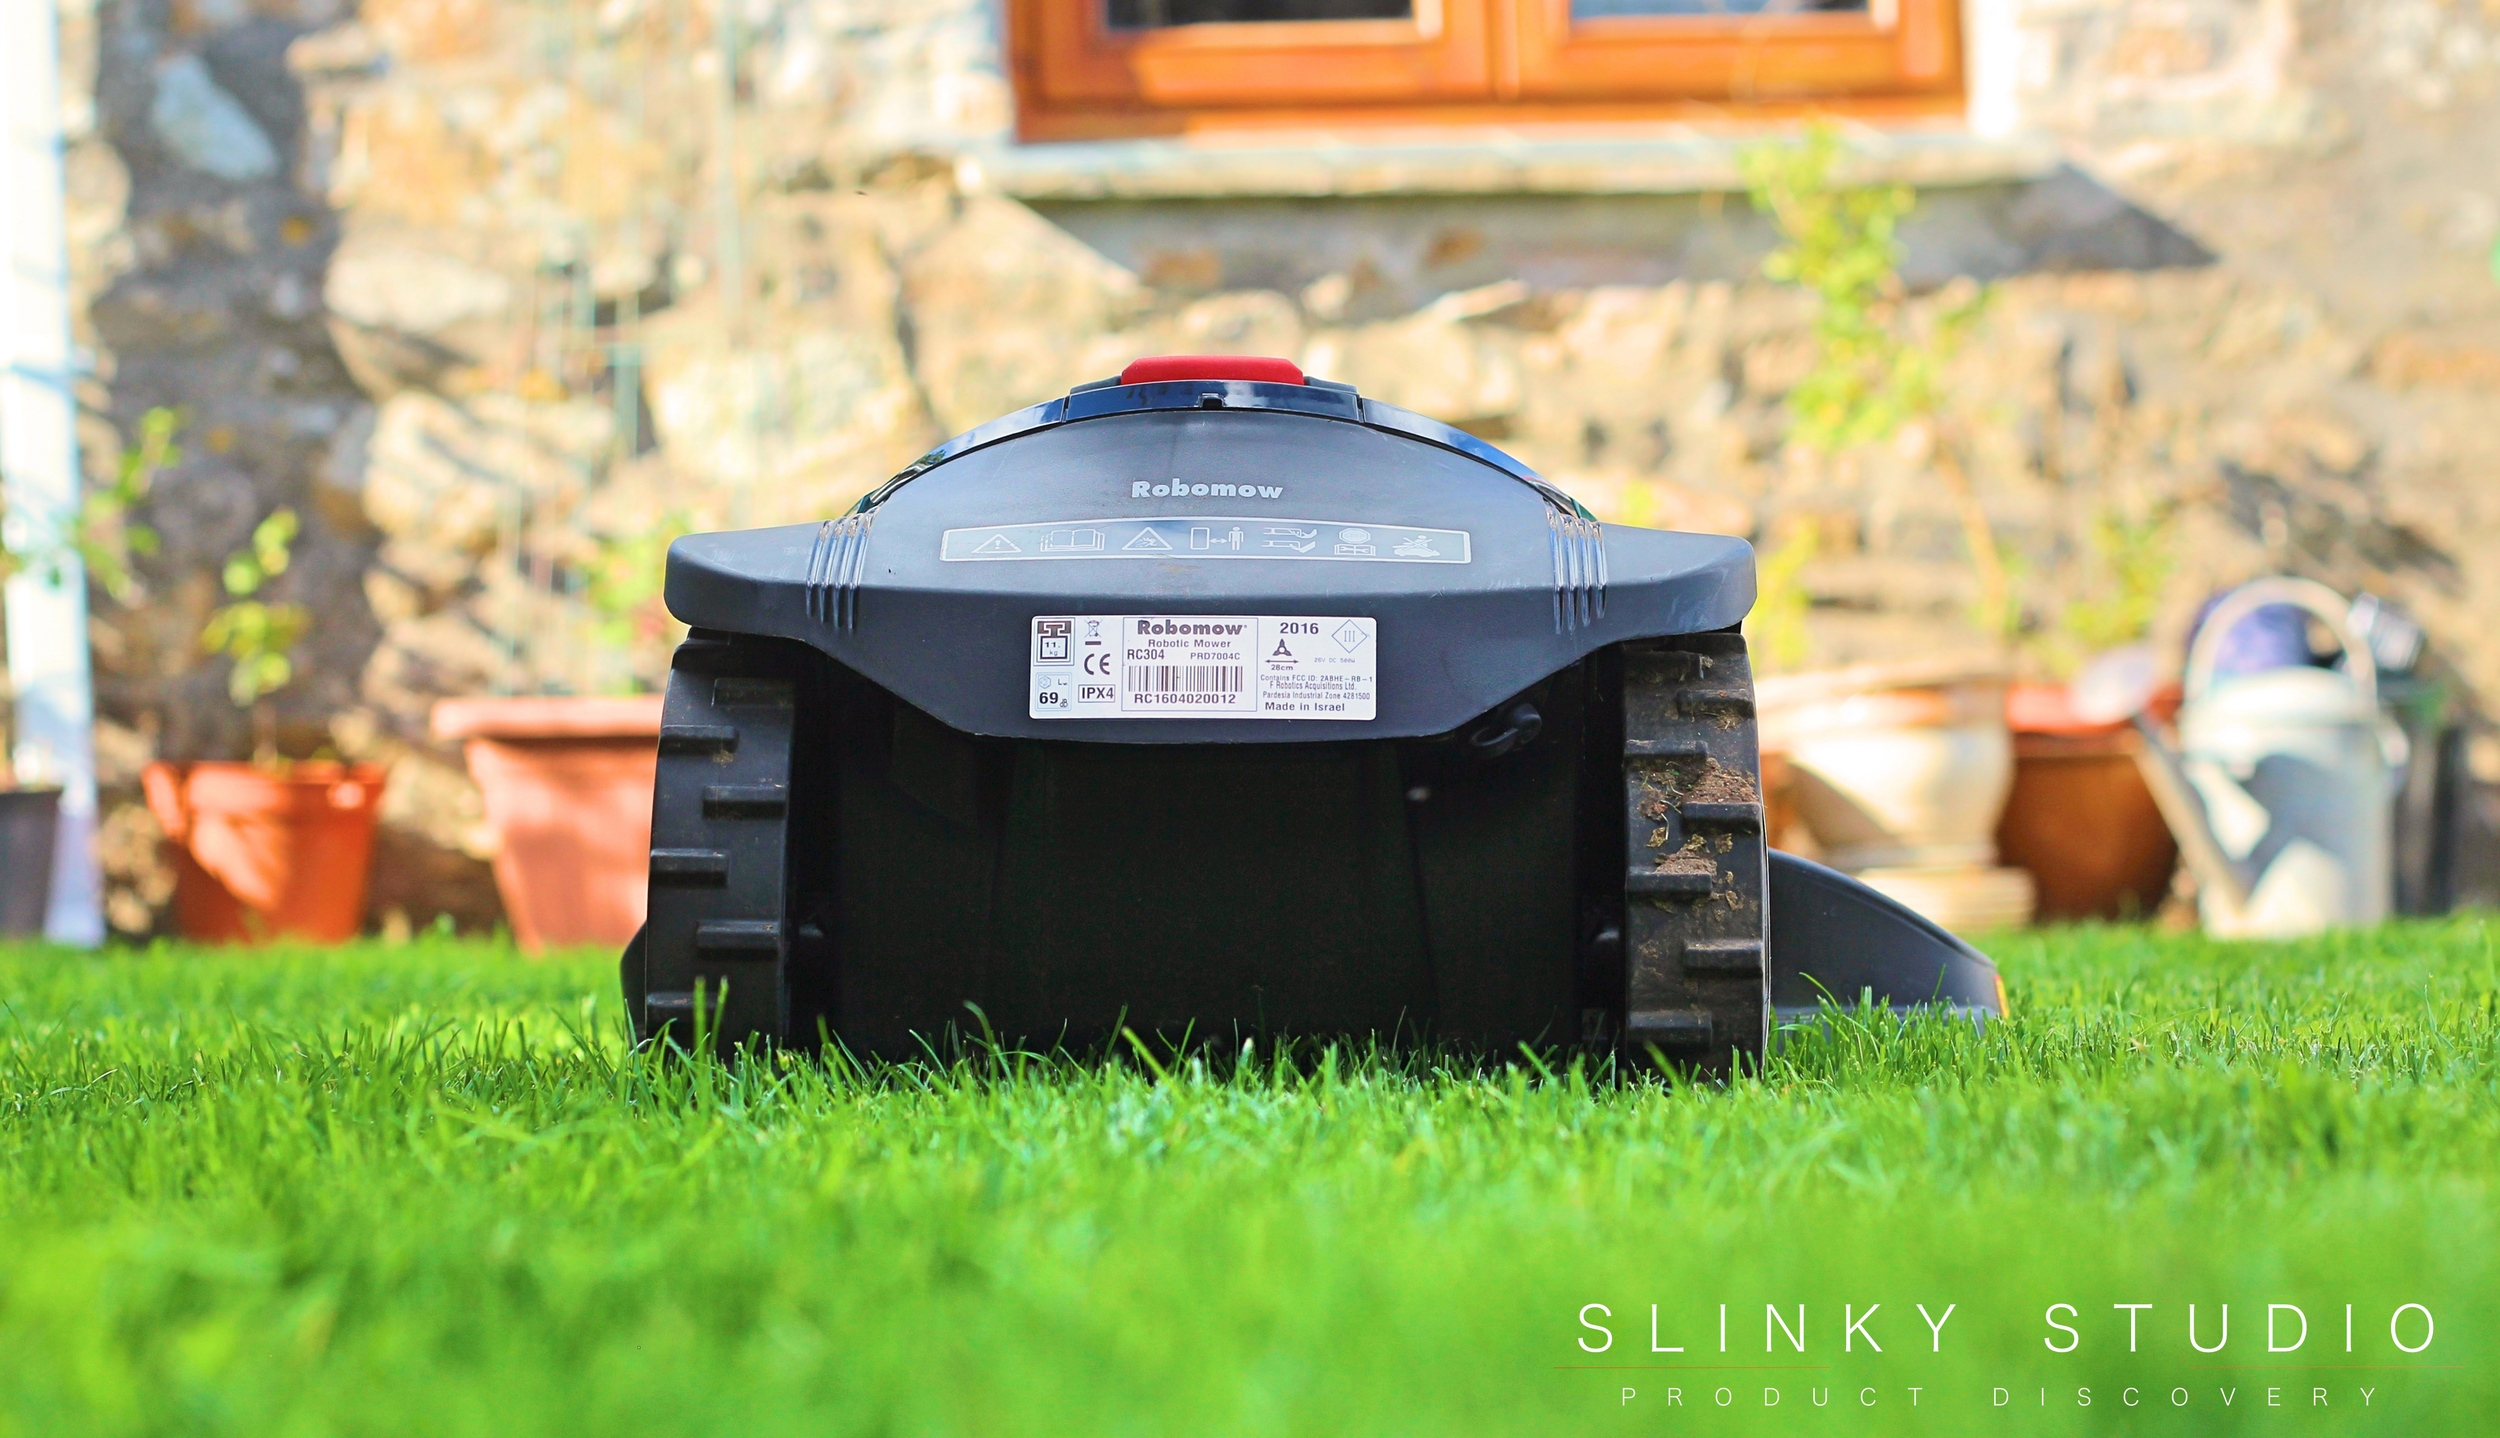 Robomow RC304 Robot Lawnmower Mowing Behind View.jpg